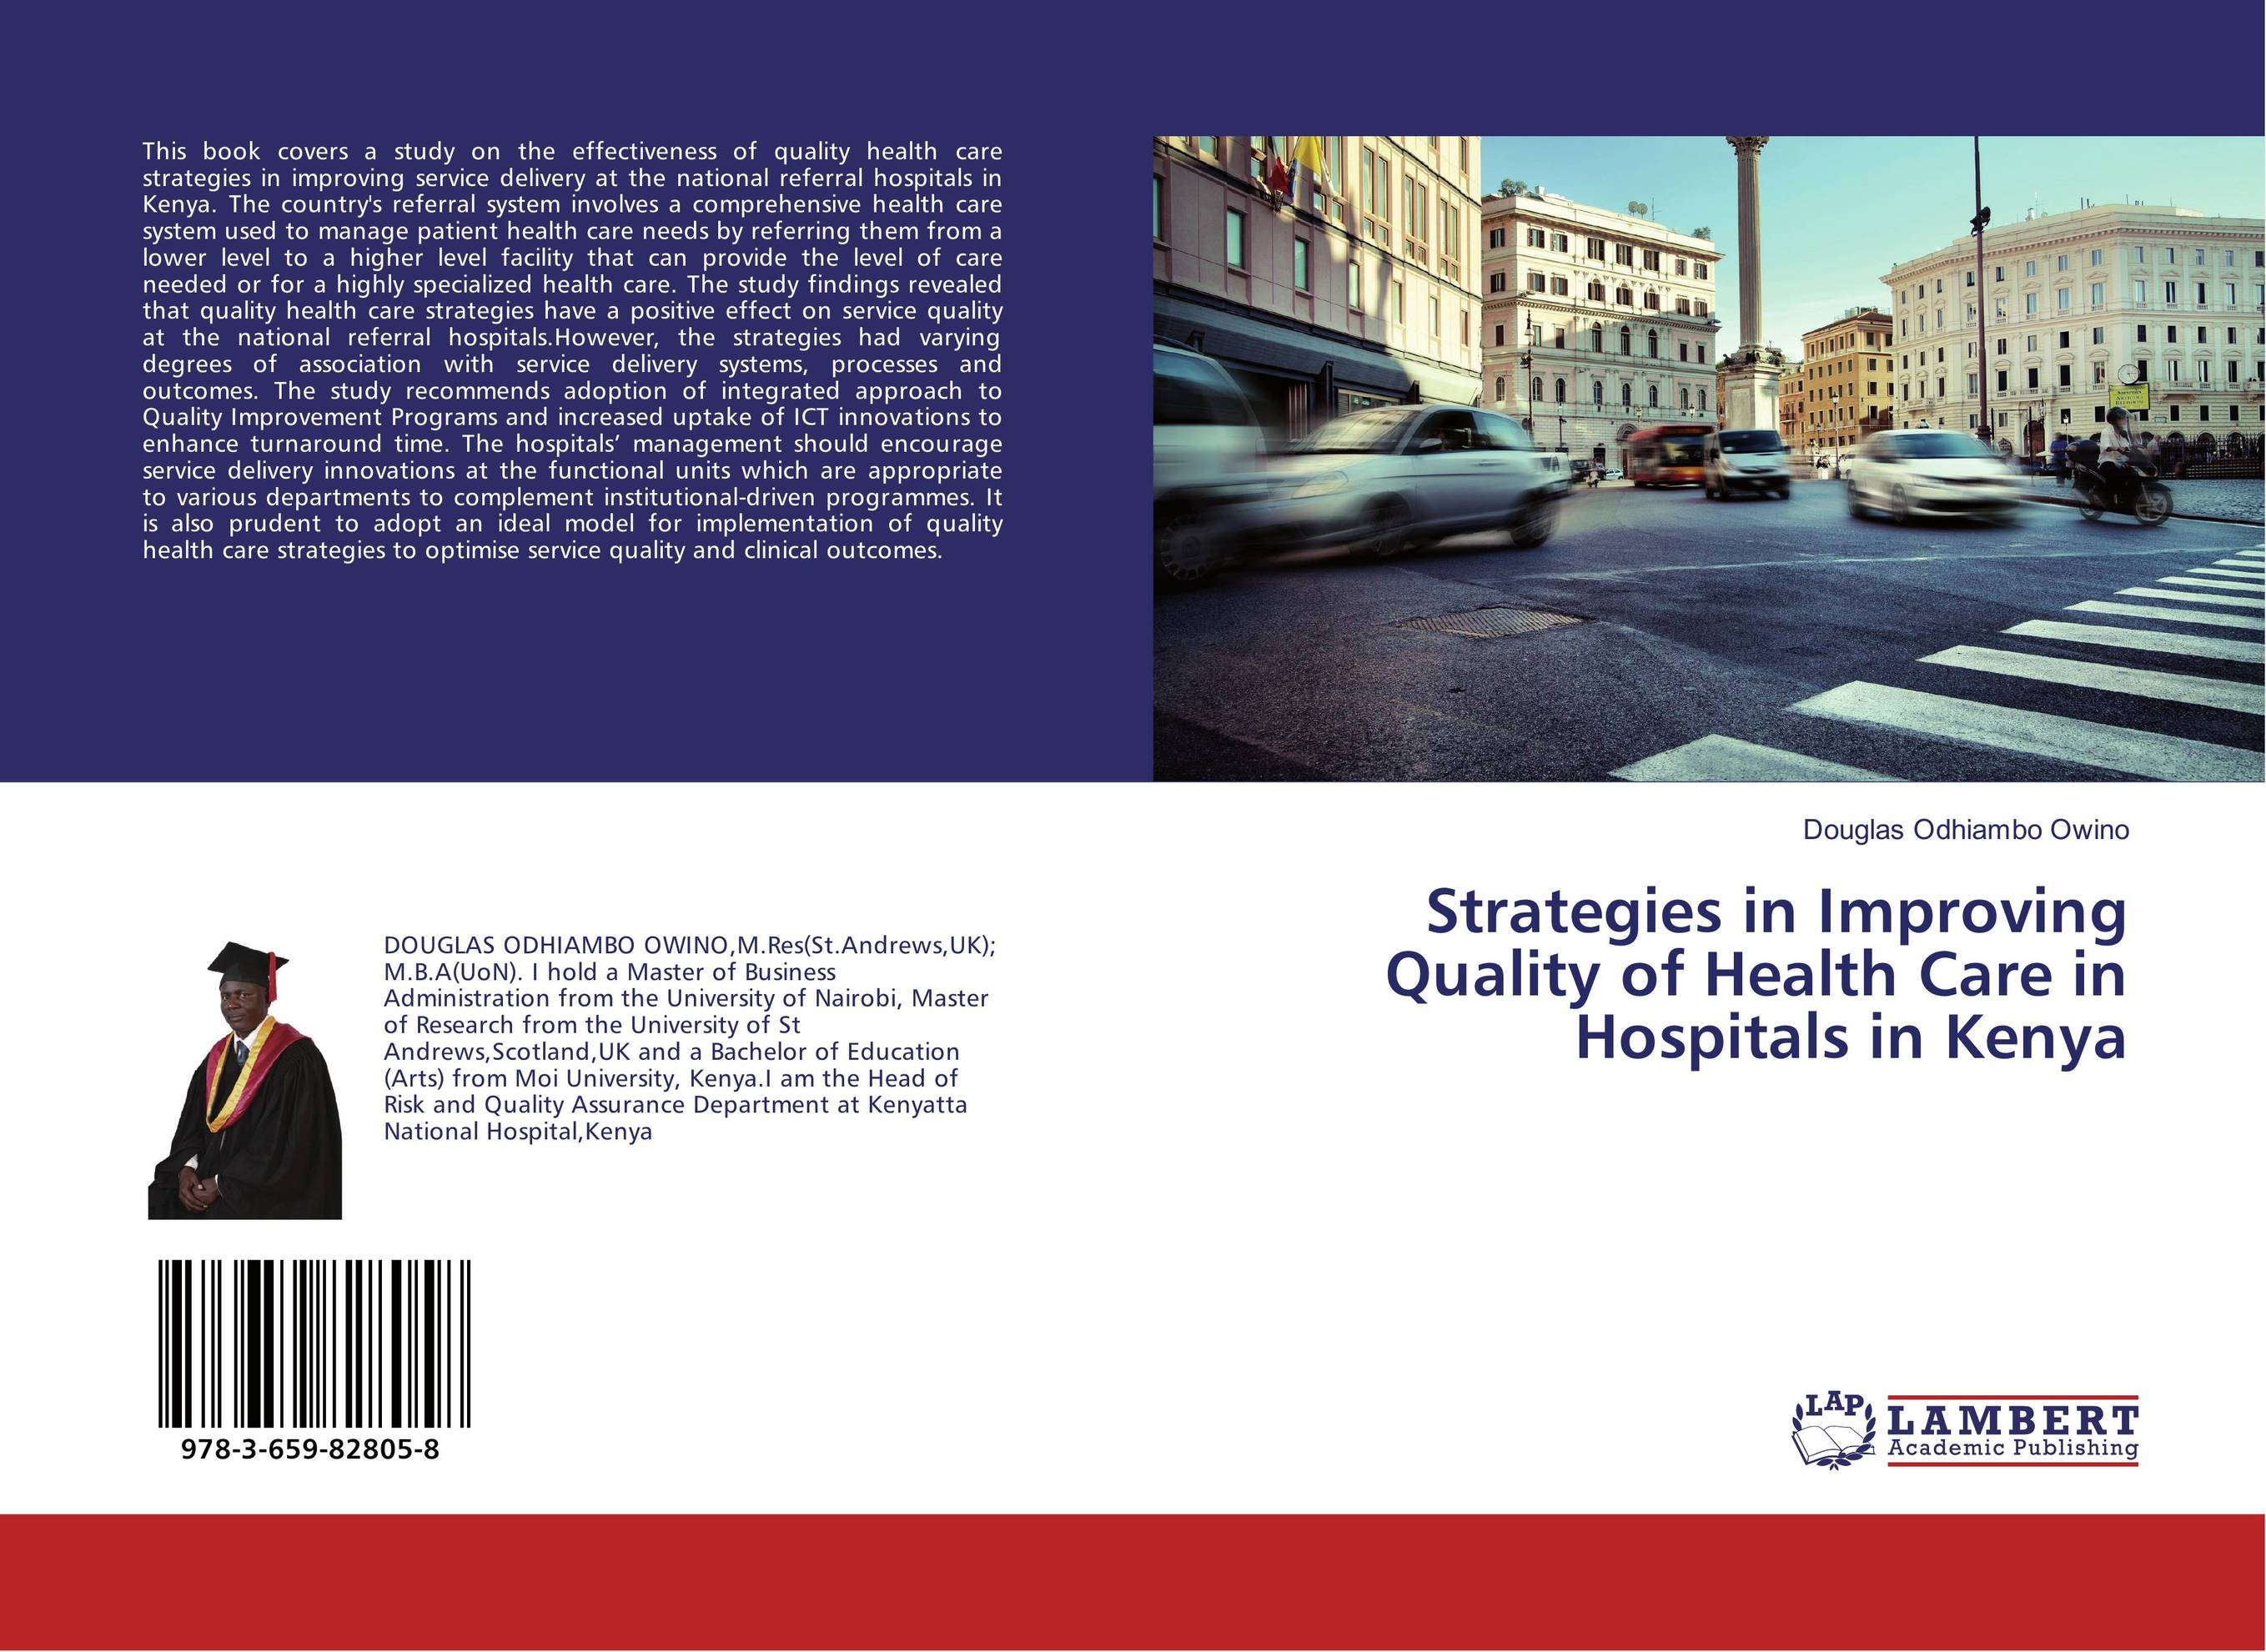 Strategies in Improving Quality of Health Care in Hospitals in Kenya pris involvement in service delivery of mch care in west bengal